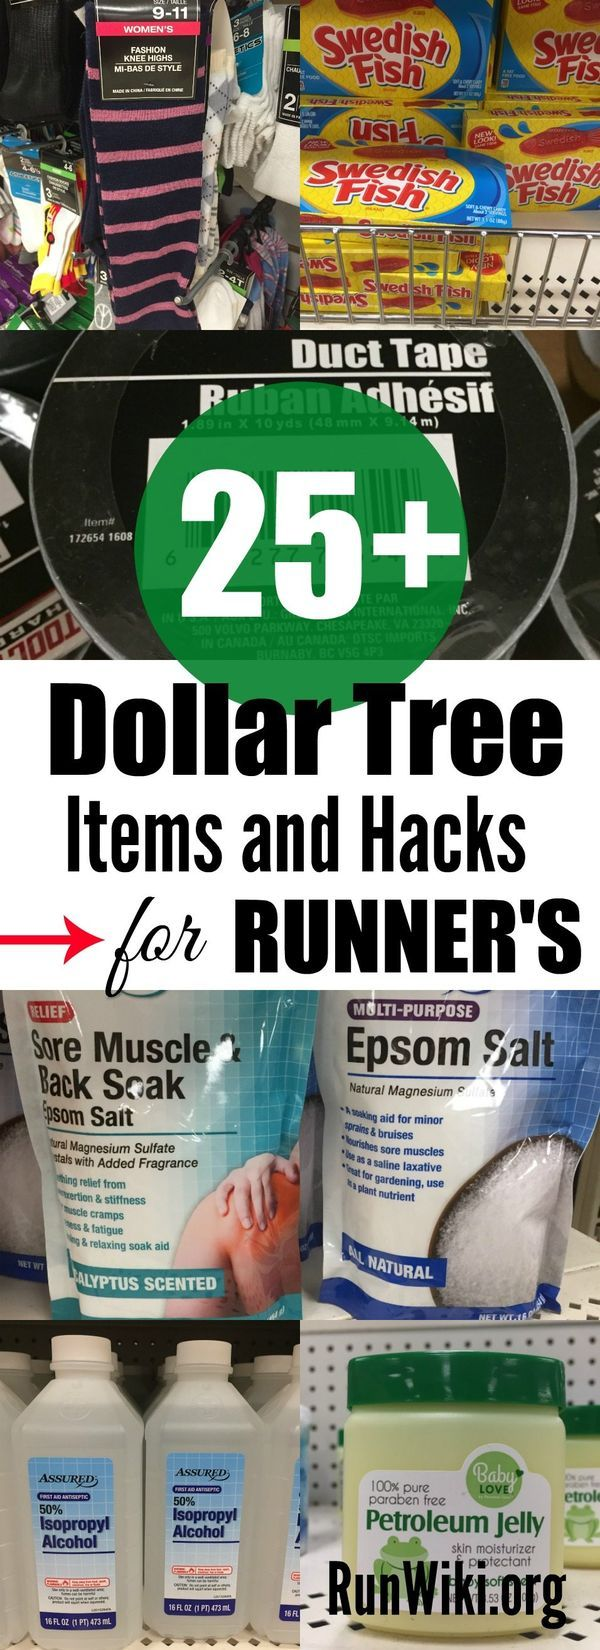 Most of the time I am in the Dollar Store or Tree only at Christmas to do a DIY craft or home decor project, but I discovered many items and hacks that are work great if you are a runner training for a half marathon or race. I love number 3! Running tips  5K   10K plans   fitness